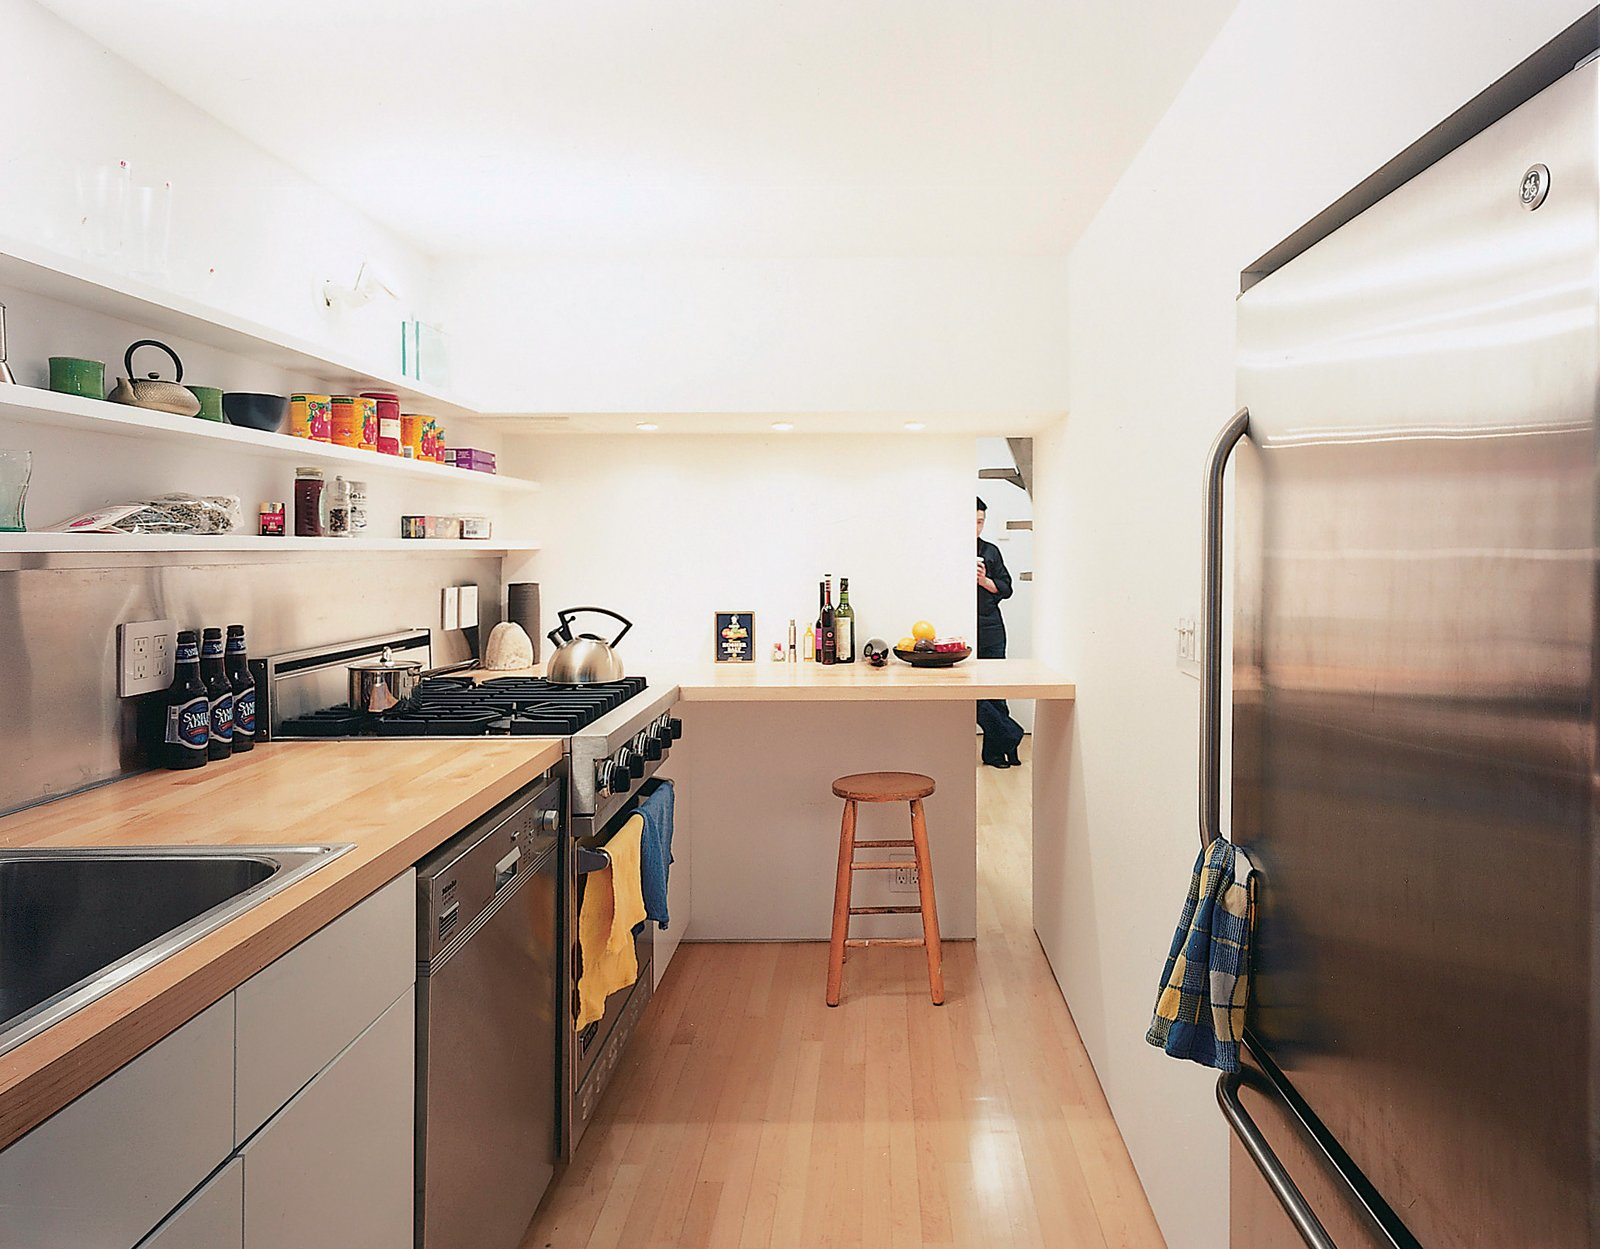 """""""The dimensions are so tight, the height especially,"""" says the architect. """"By densifying the core—the bathroom, kitchen, and bedroom—the rest became much more spacious than it used to be.""""  Photo 5 of 7 in Big City, Little Loft"""